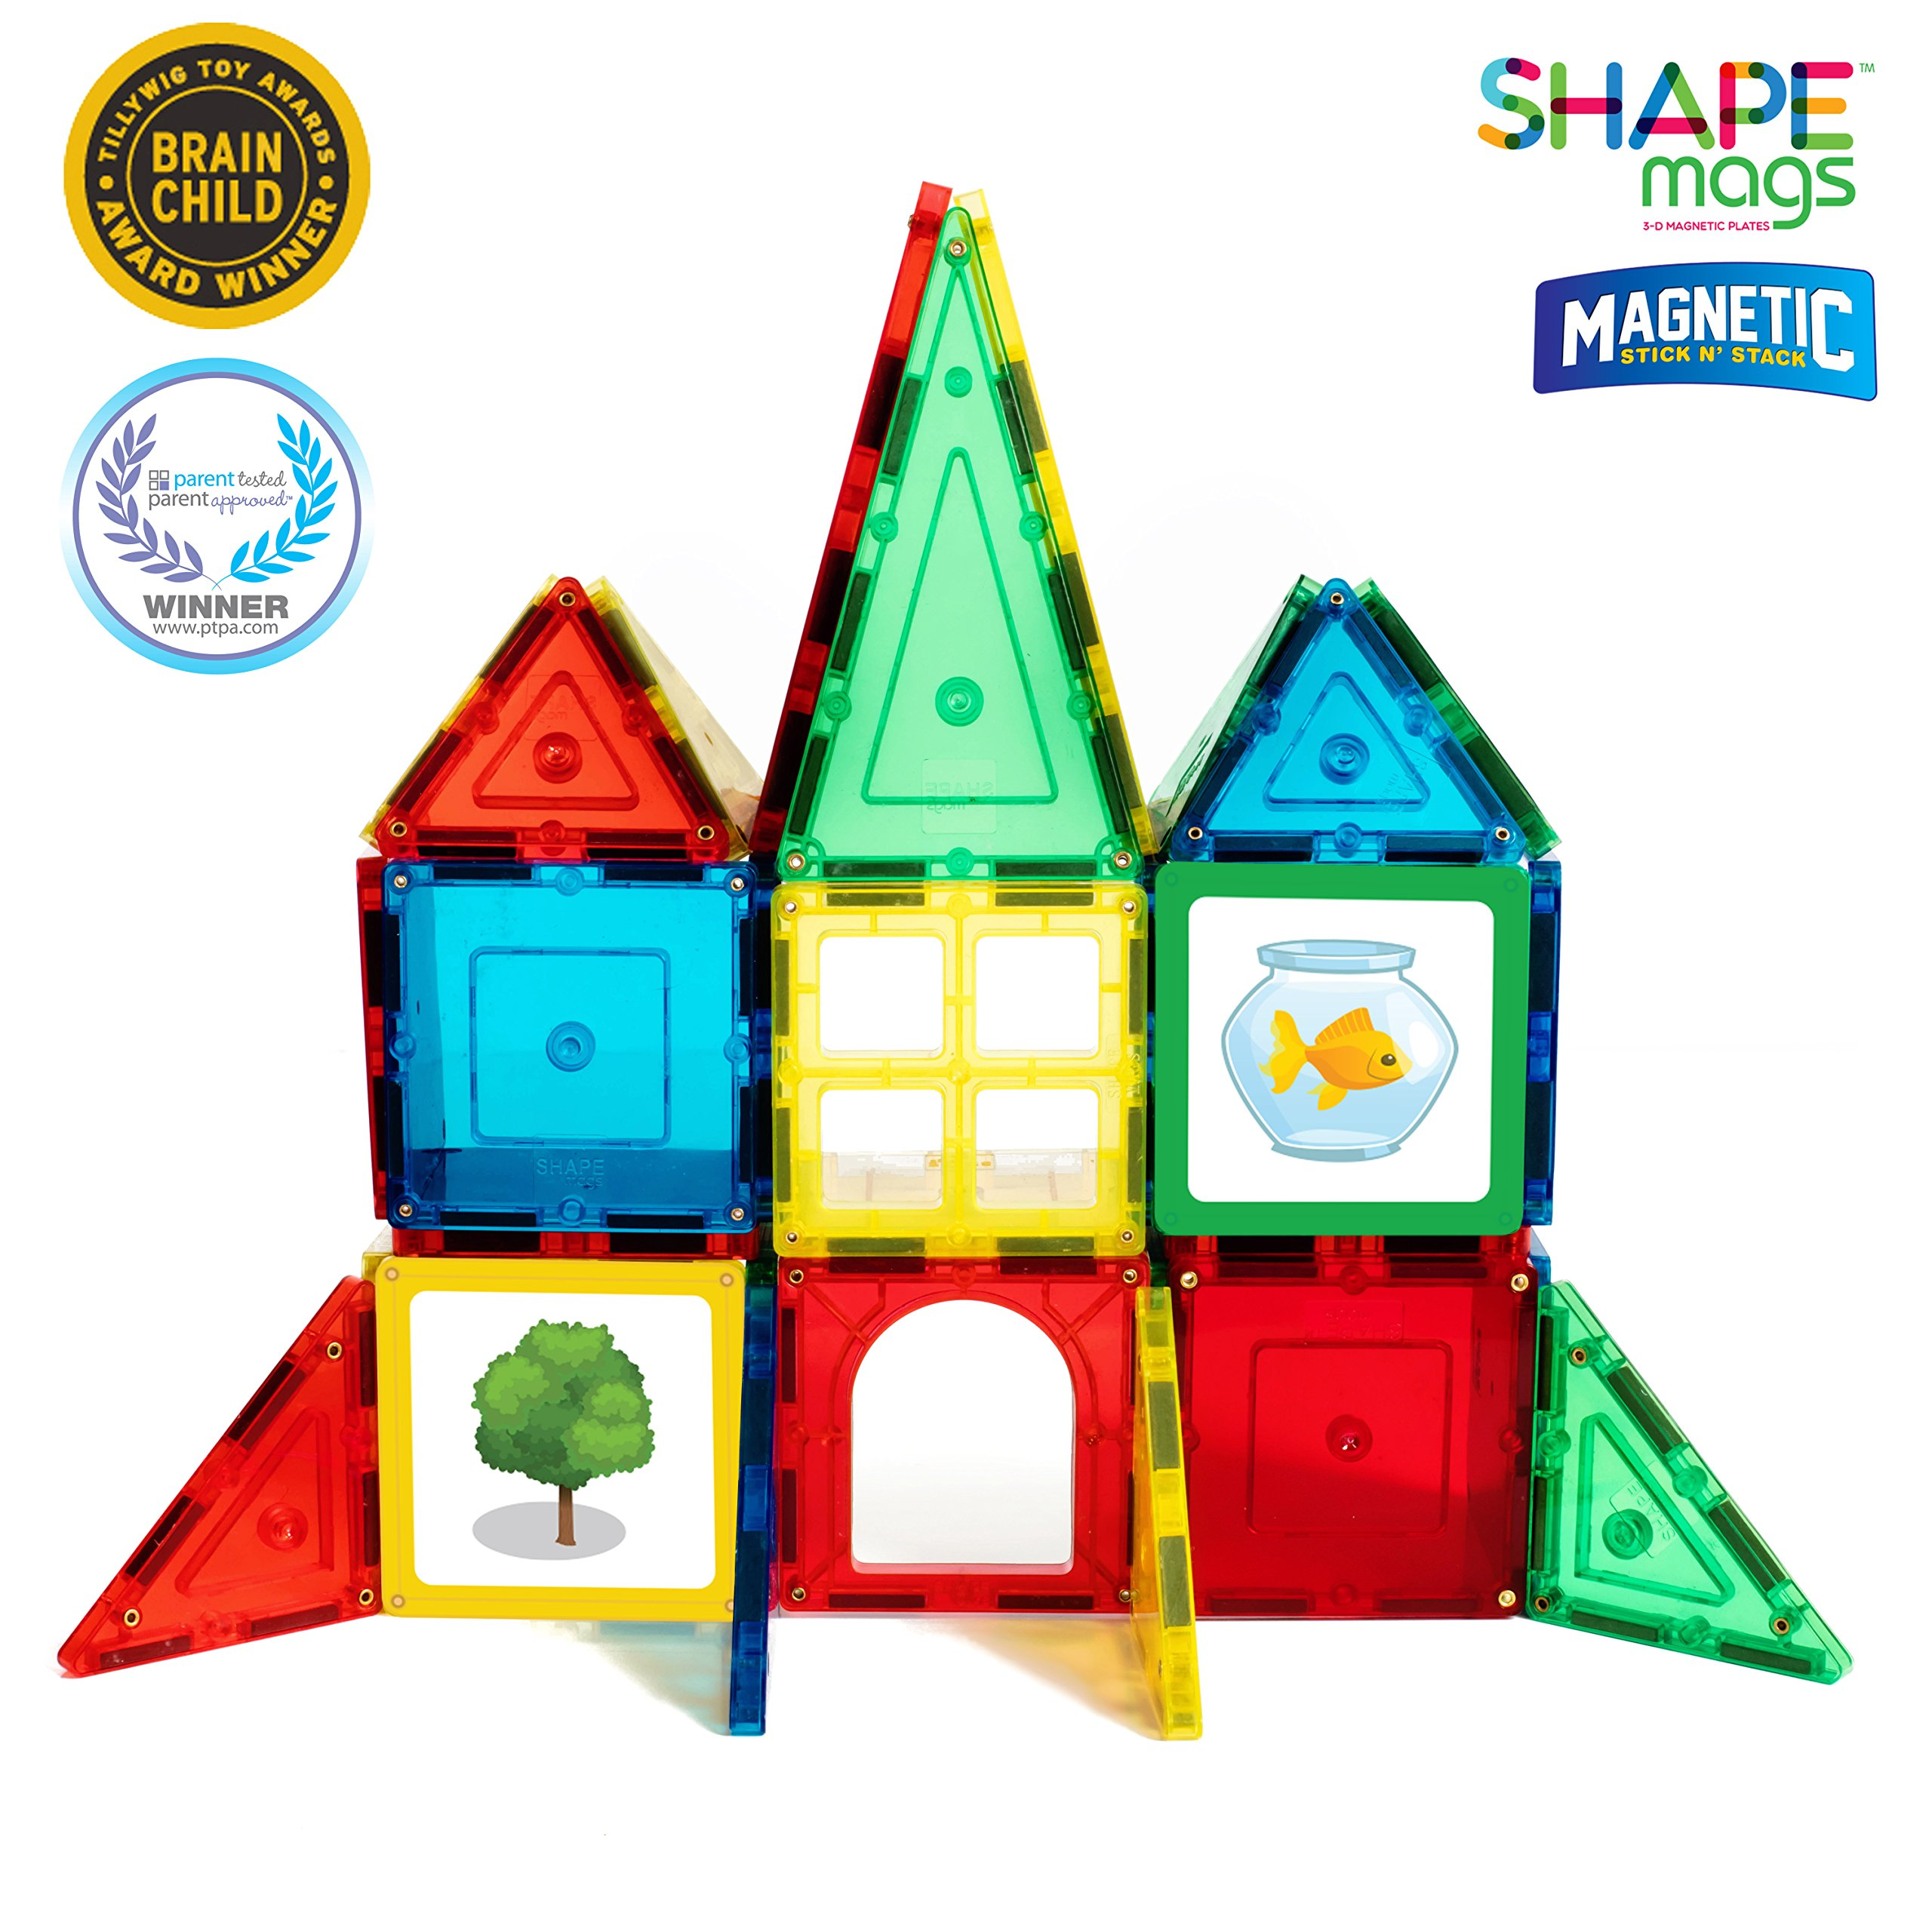 Magnetic Stick N Stack Award Winning 40 Piece Junior Set, Includes 32 Magnetic Tiles and 8 Stilemags. Made with Power+Magnets